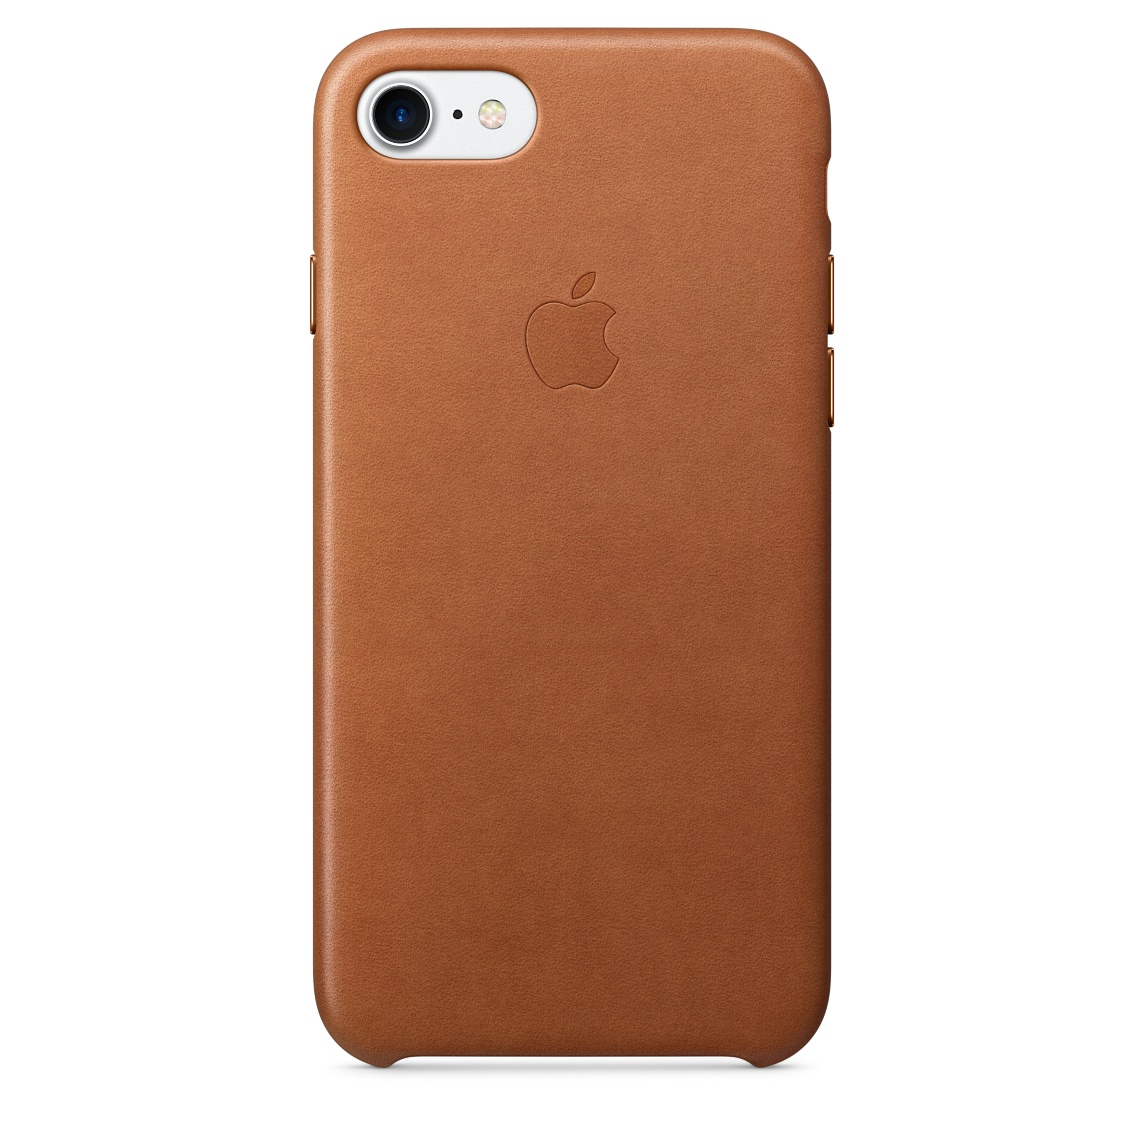 Pouzdro / kryt pro Apple iPhone 7 - Apple, Leather Case Saddle Brown mmy22zm/a